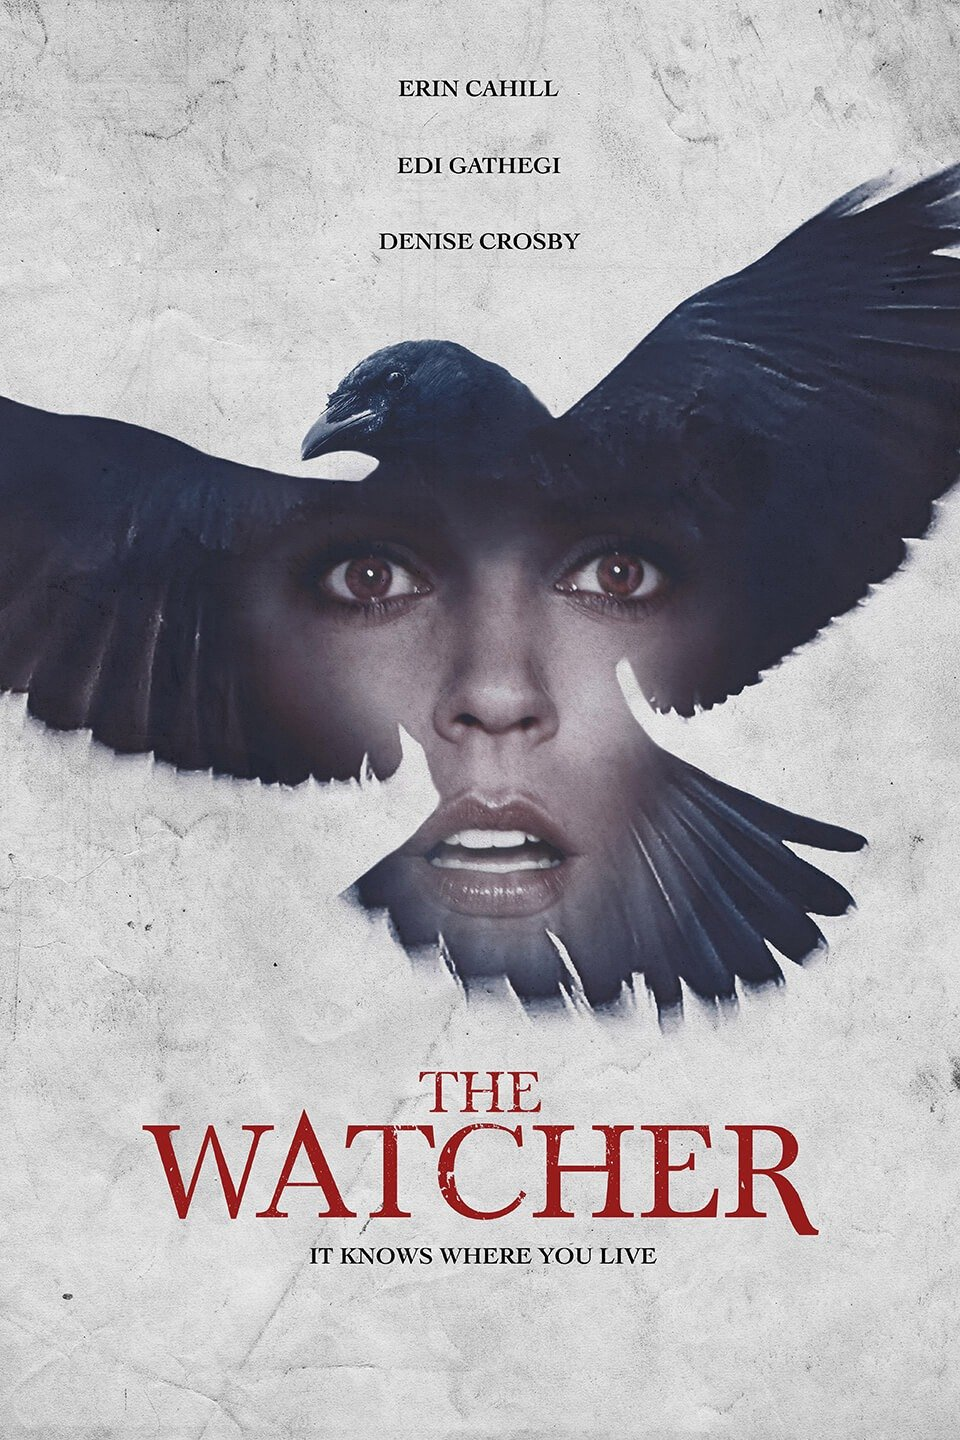 The Raven's Watch-The Watcher